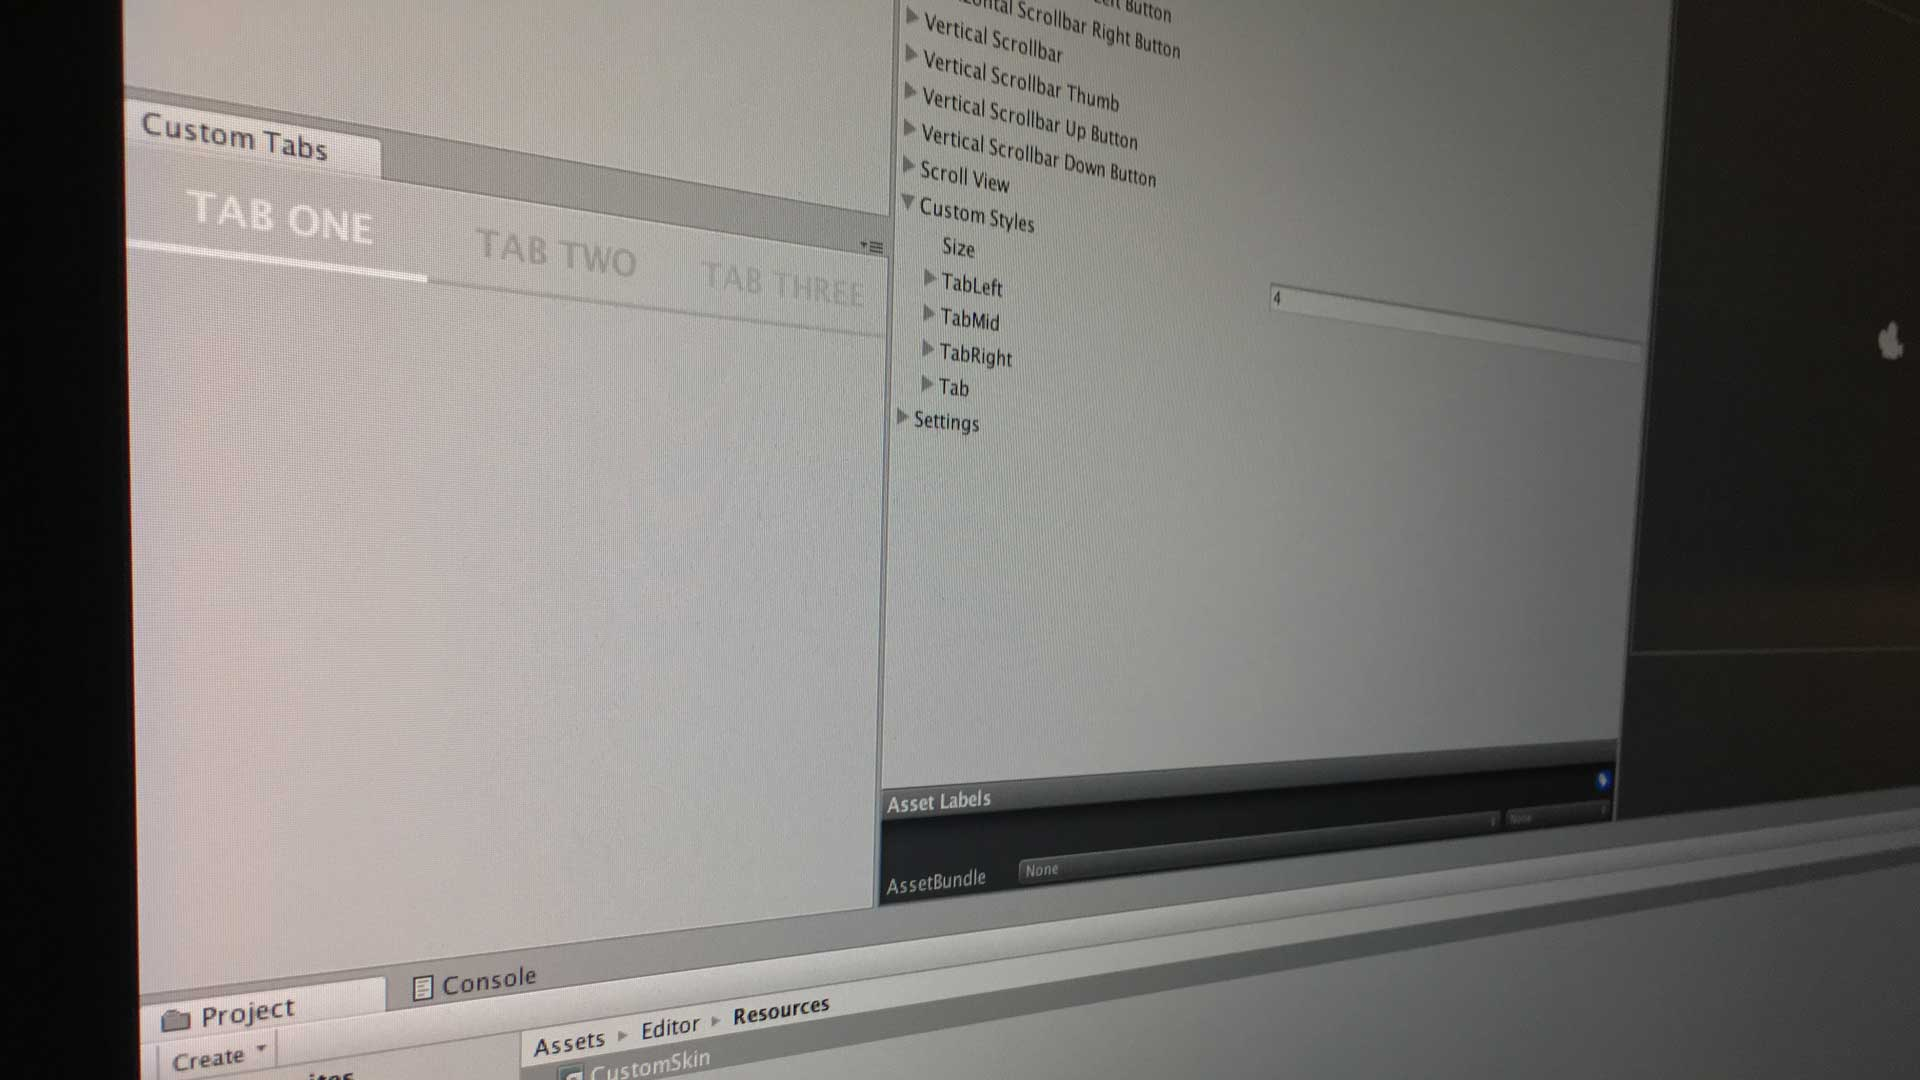 How To Style Unity Editor Window Toolbar Buttons With GUISkin